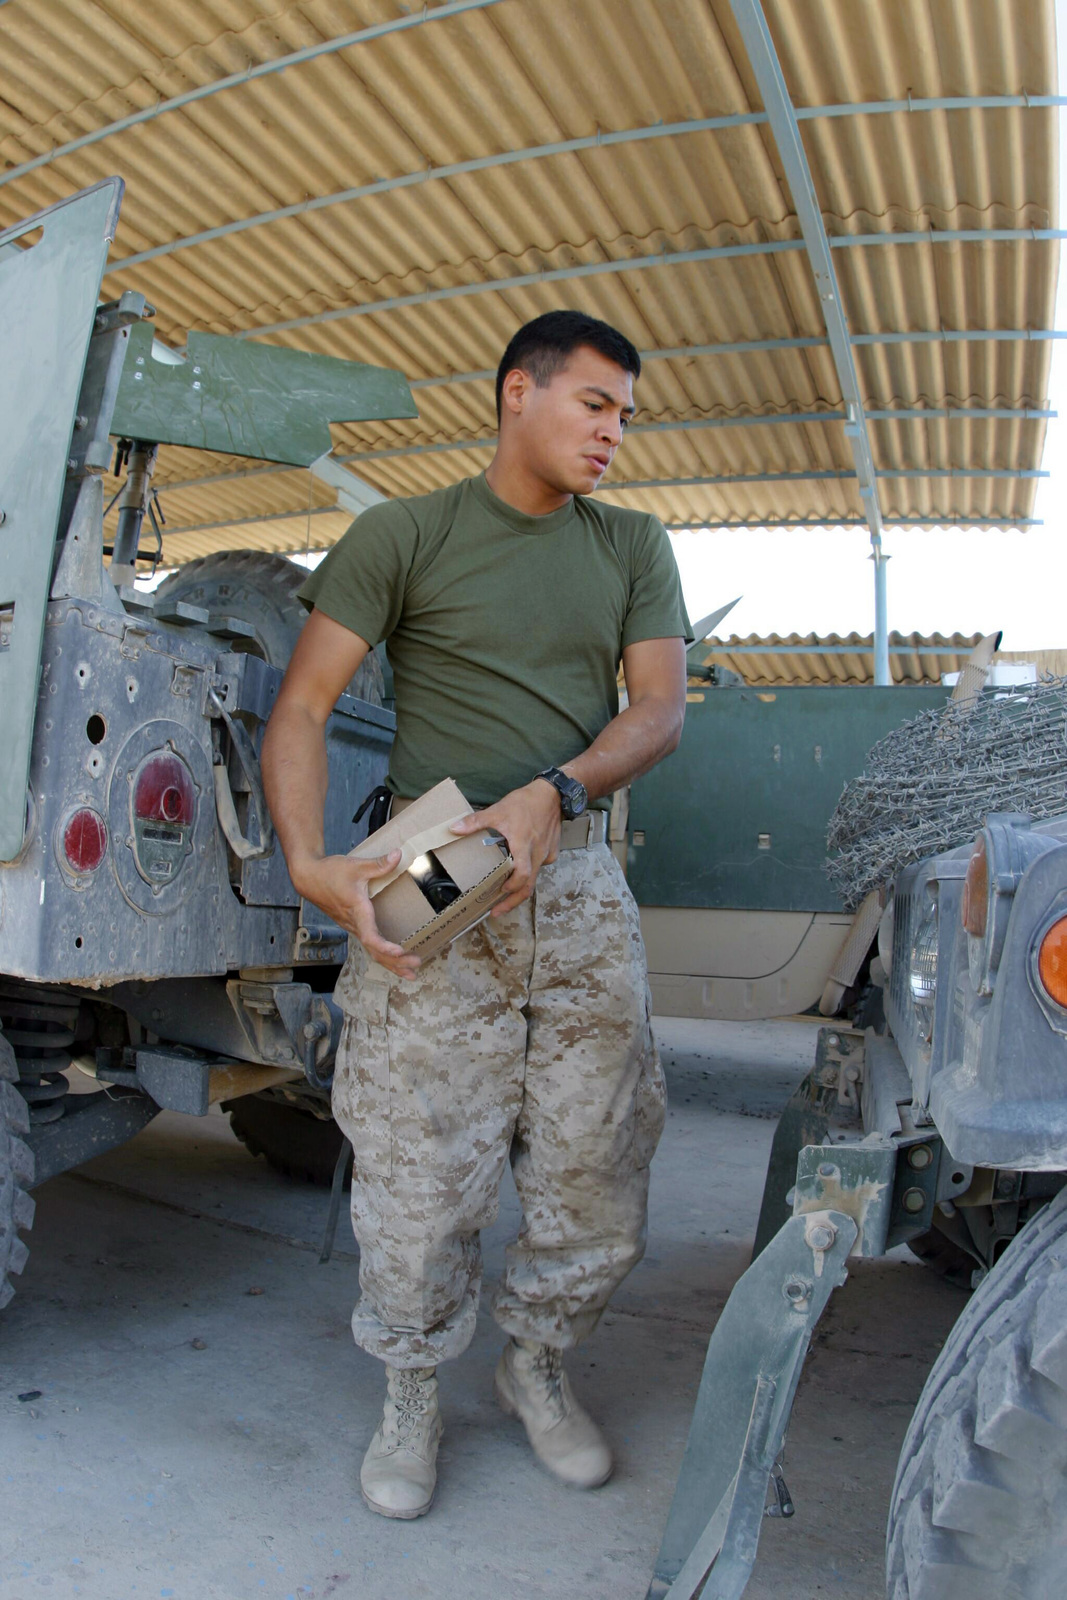 US Marine corps (USMC) Marine, pictured between two M1114 Up-Armored High Mobility Multipurposed Wheeled Vehicles (HMMWV), from Alpha Company (A CO), 3rd Assault Amphibious Battalion (AAB), 1ST Marine Division (MARDIV), performs monthly vehicle maintenance at Camp Fellujah, Iraq (IRQ). The 1ST MARDIV, in support of Operation IRAQI FREEDOM, is engaged in Security and Stabilization Operations (SASO) in the Al Anbar Province of Iraq